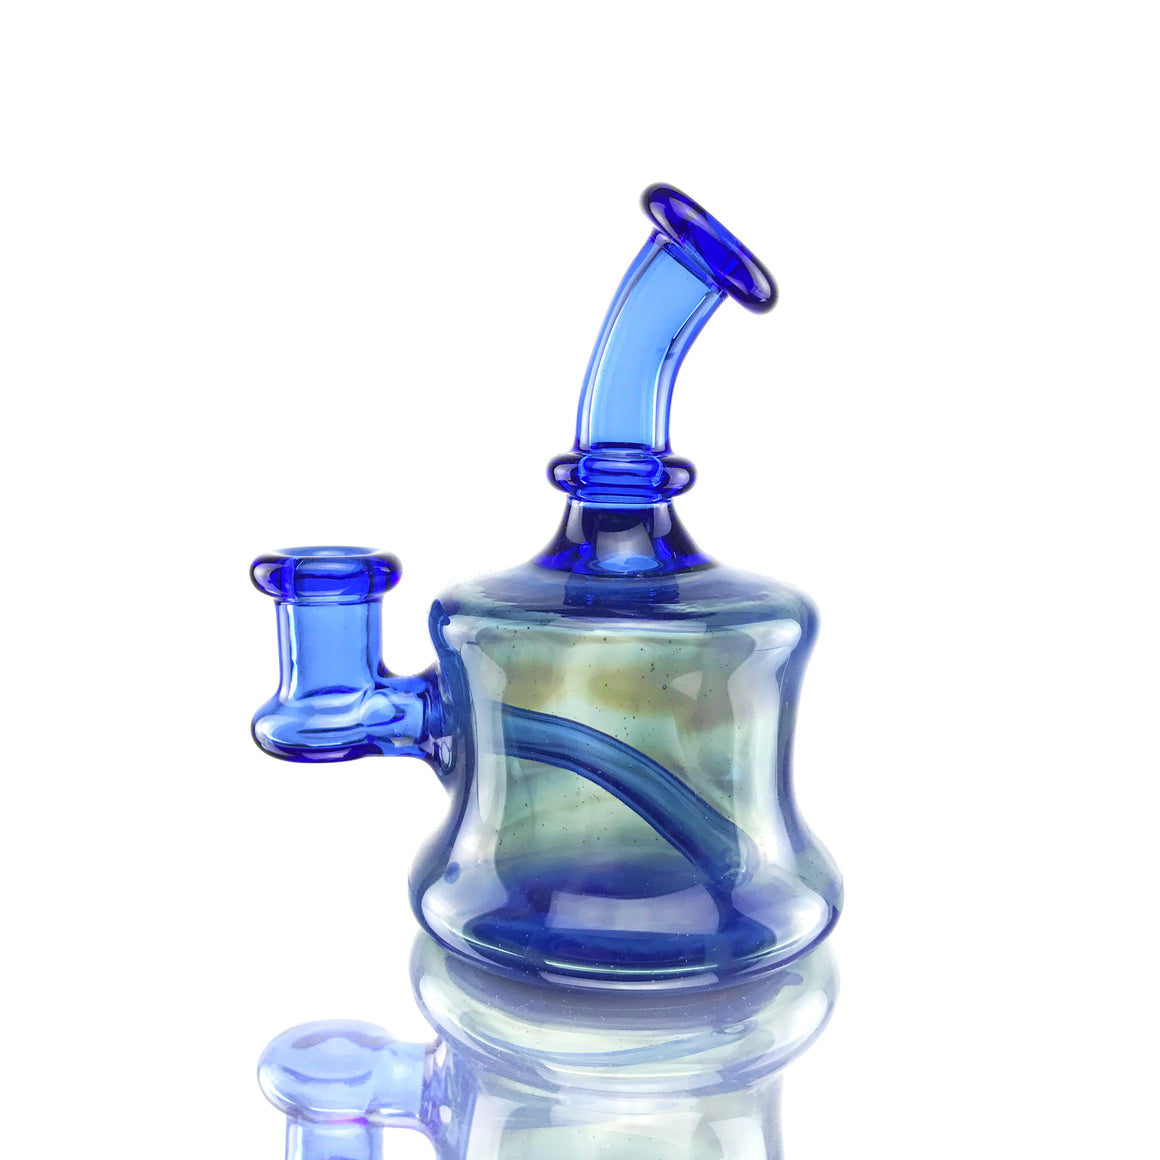 Fully-worked Micro Rig - Blue Dream/Fume Blue - 10mm Female